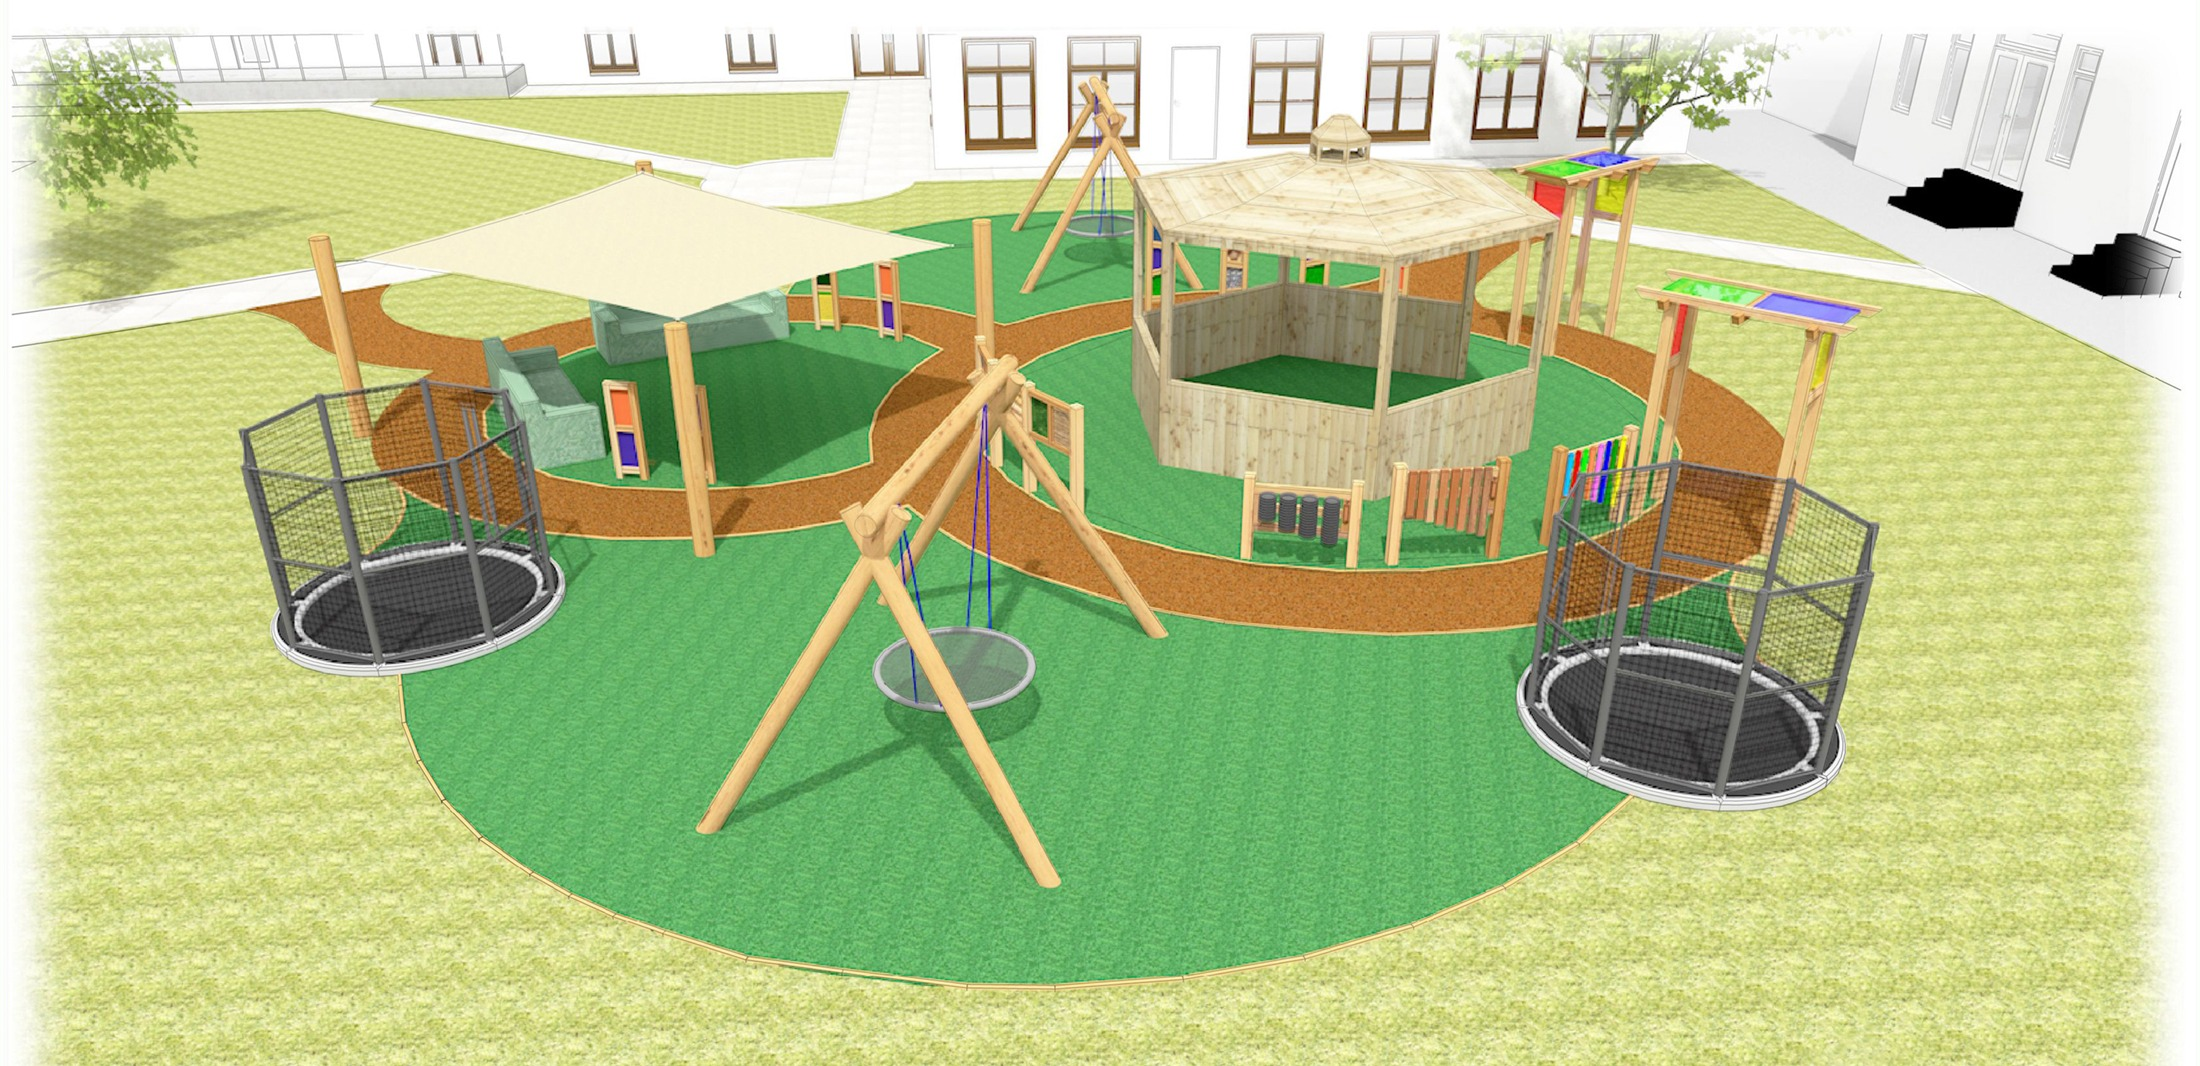 Sensory Garden plans for Raby Hall